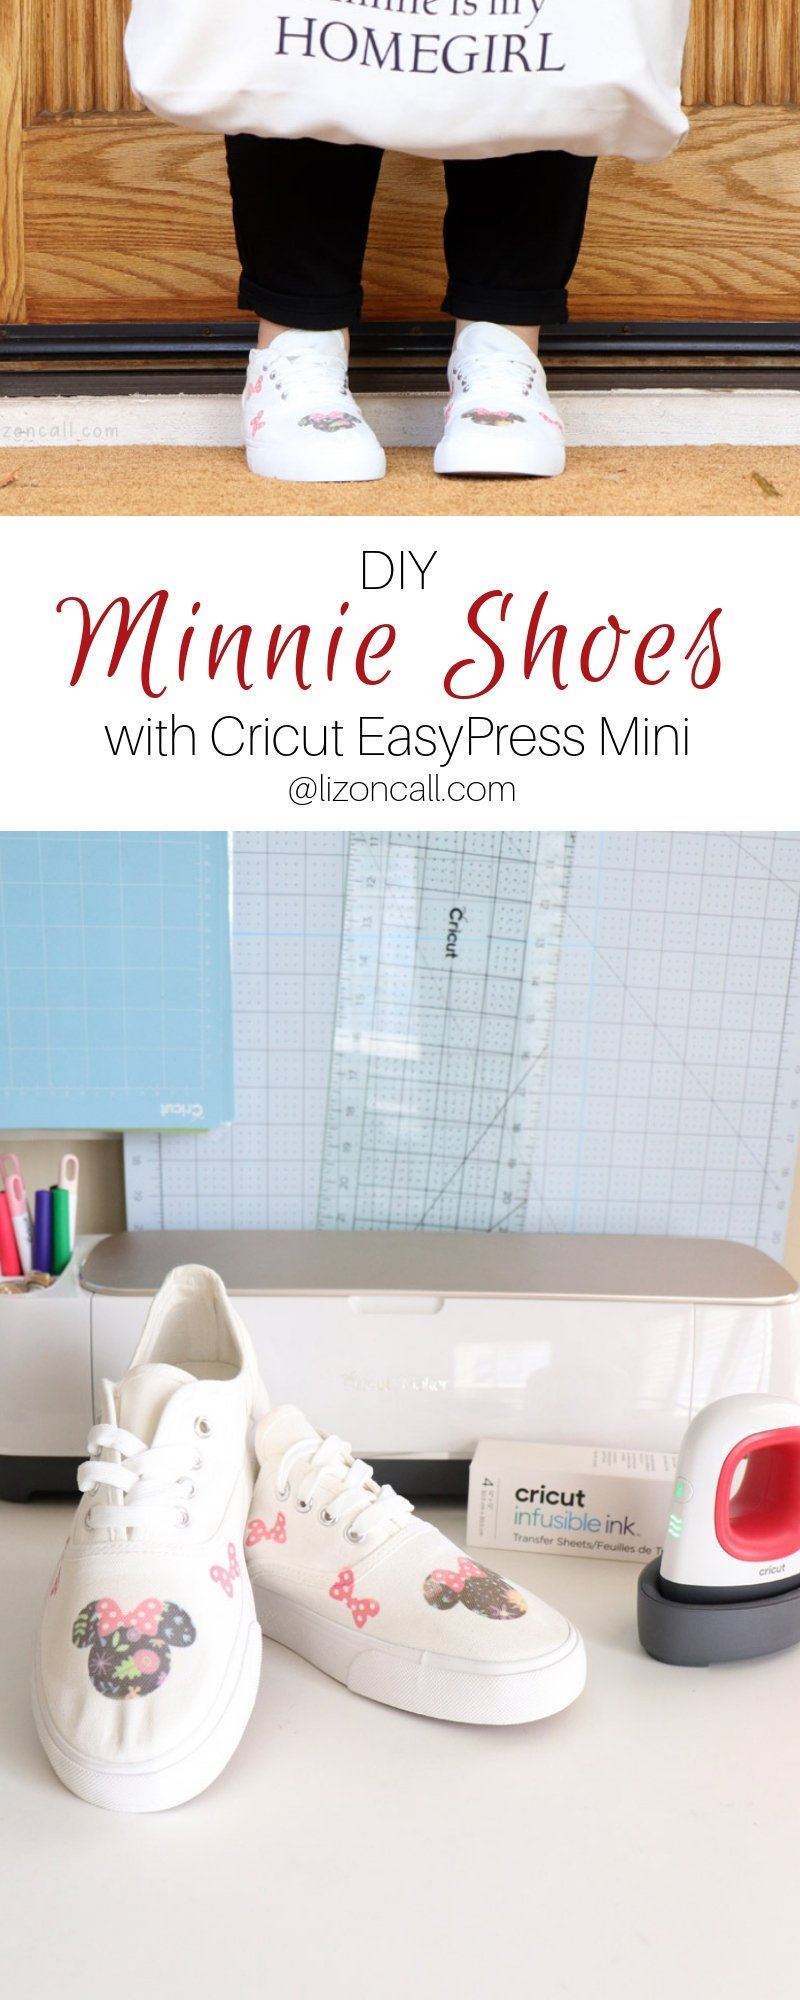 titled pinnable image DIY minnie mouse shoes made with infusible ink and easypress mini